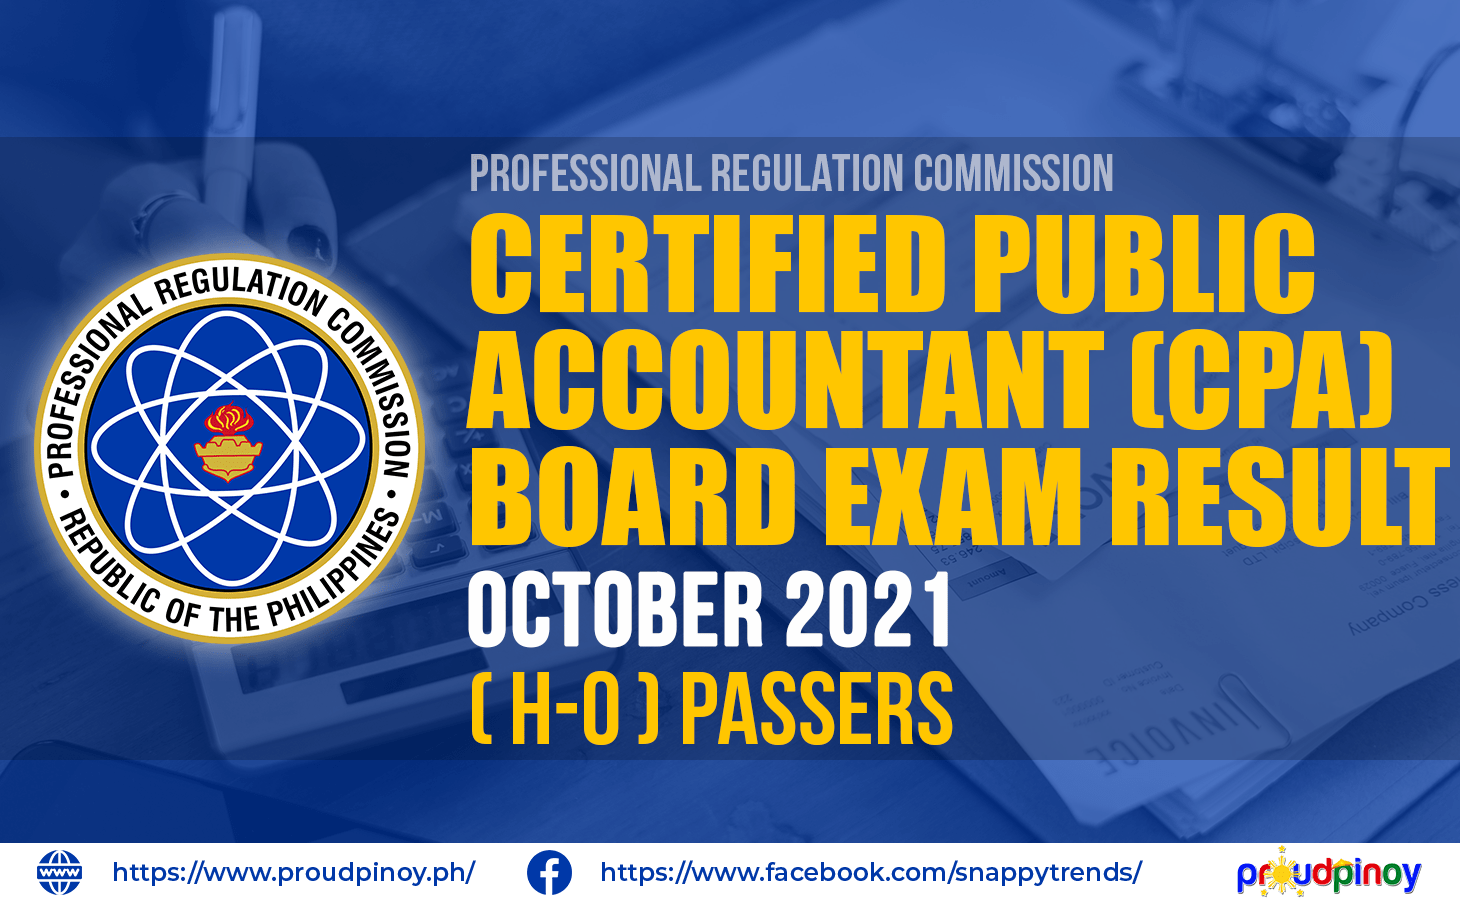 (H-O) Passers: CPA Board Exam Results October 2021